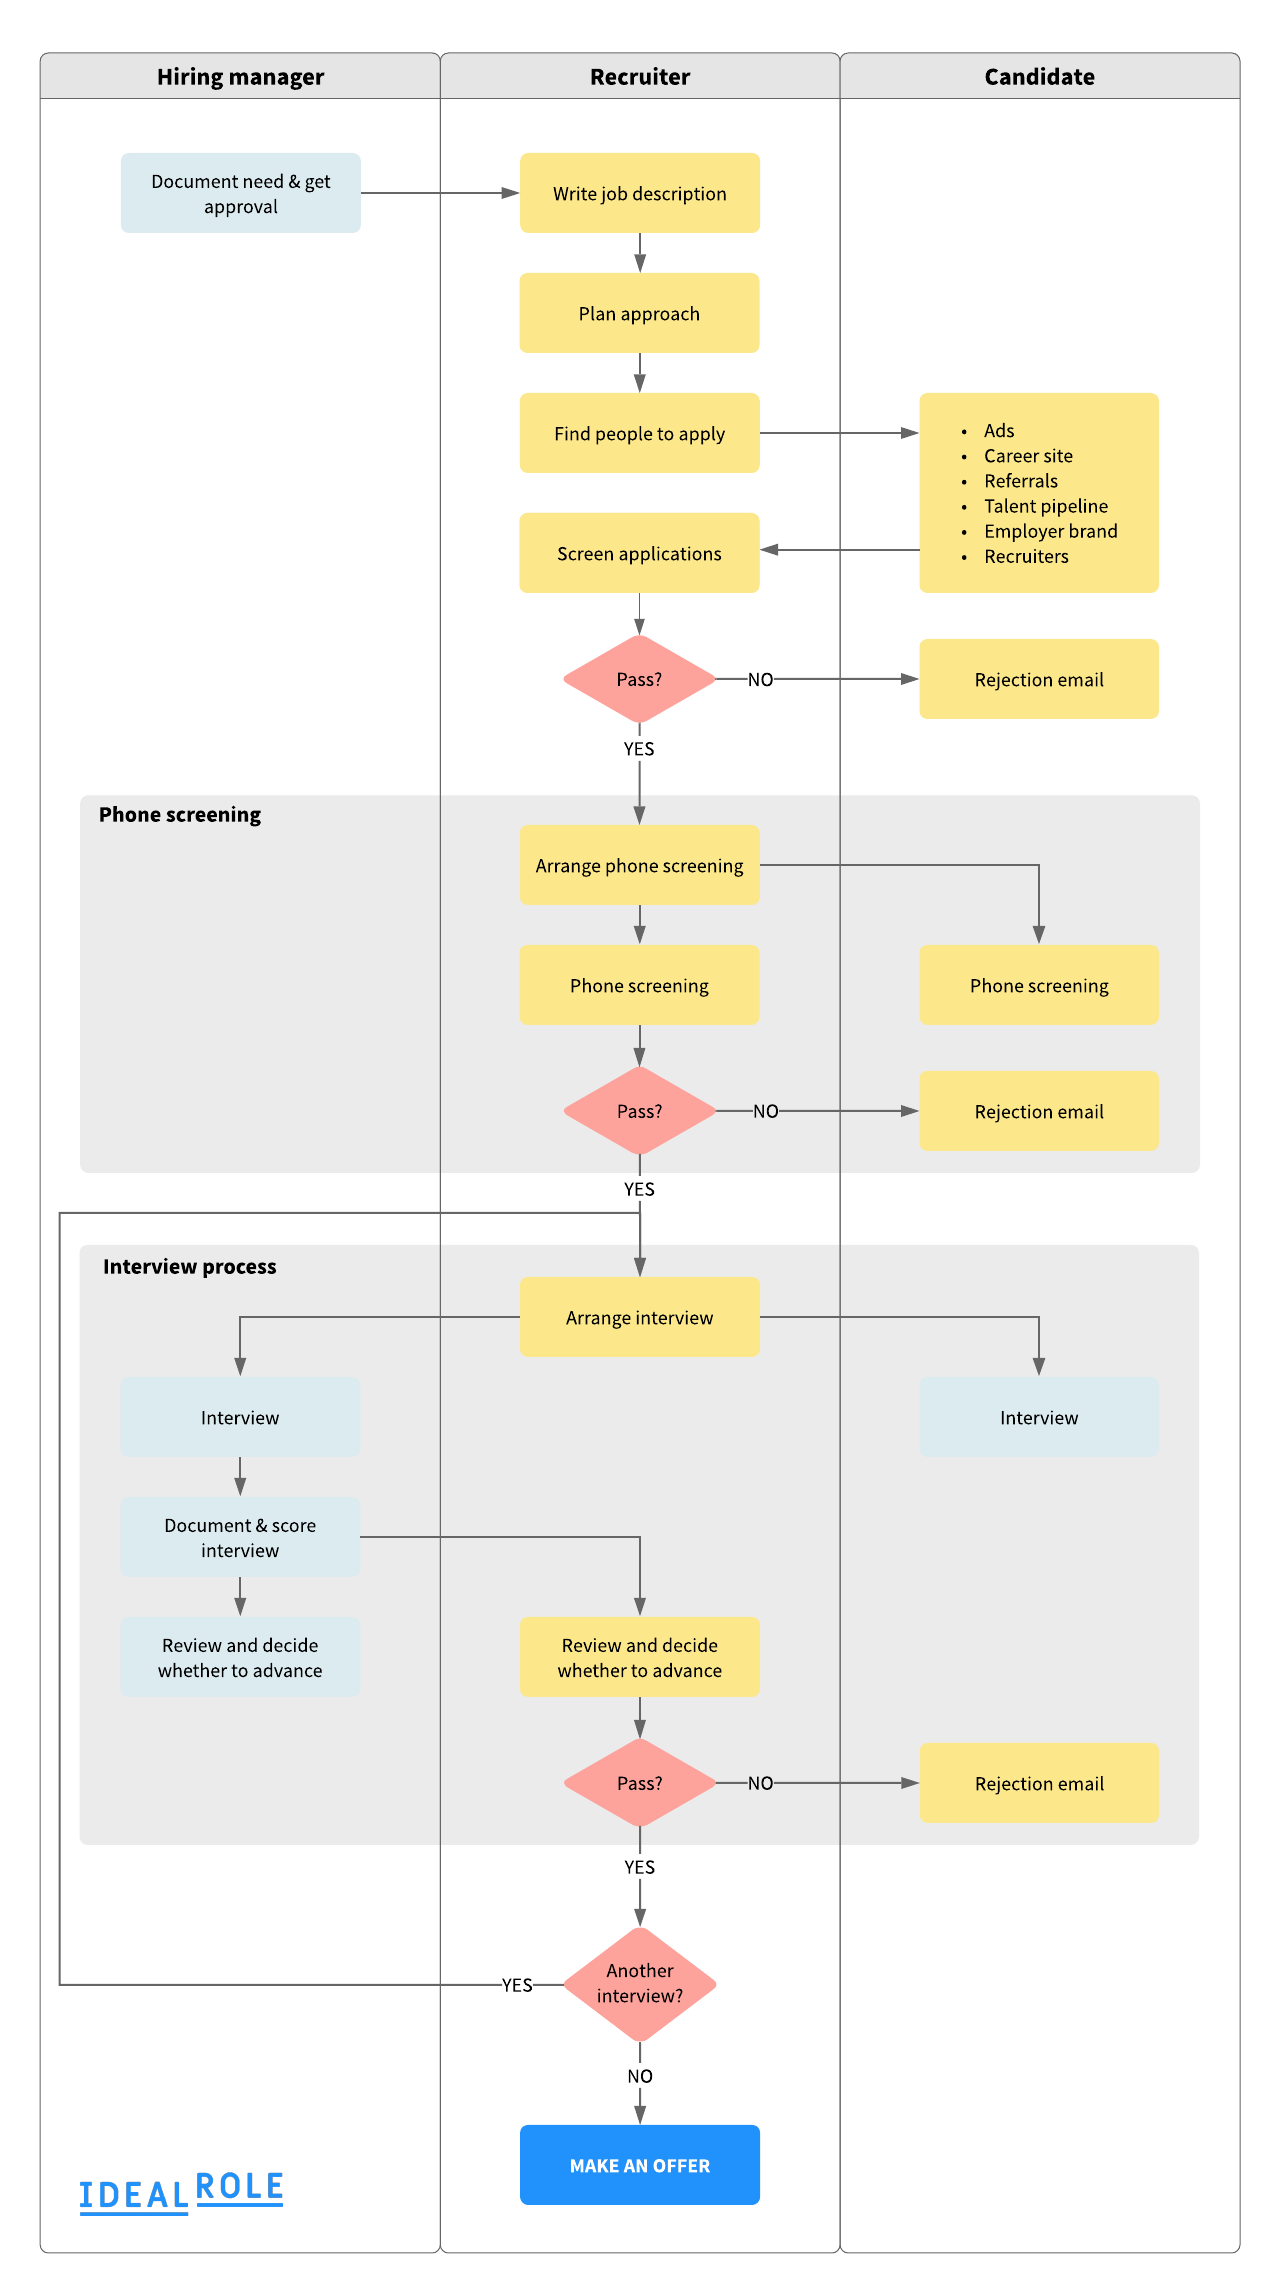 Recruitment process flowchart - Ideal Role